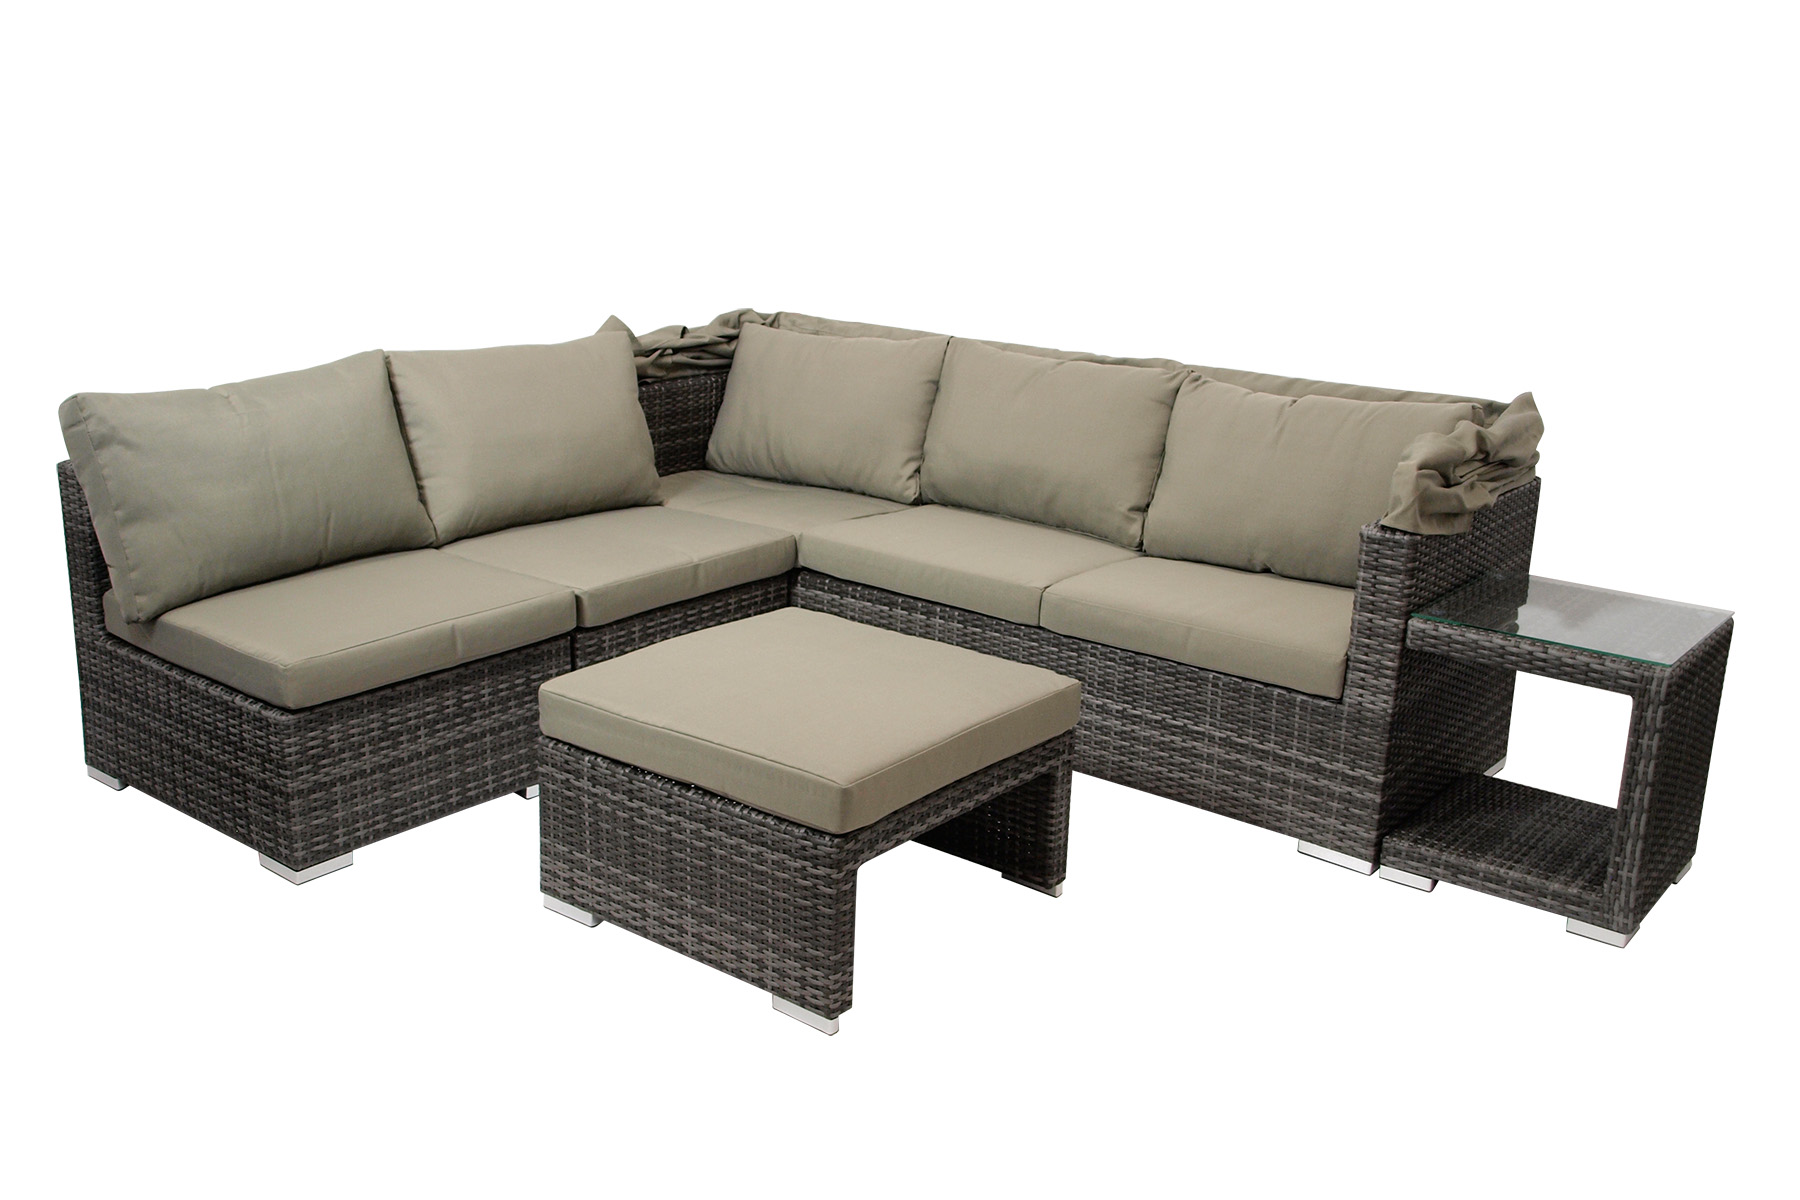 loungeset funktions lounge set sofaset manacor 16 teilig alu polyrattan grau ebay. Black Bedroom Furniture Sets. Home Design Ideas